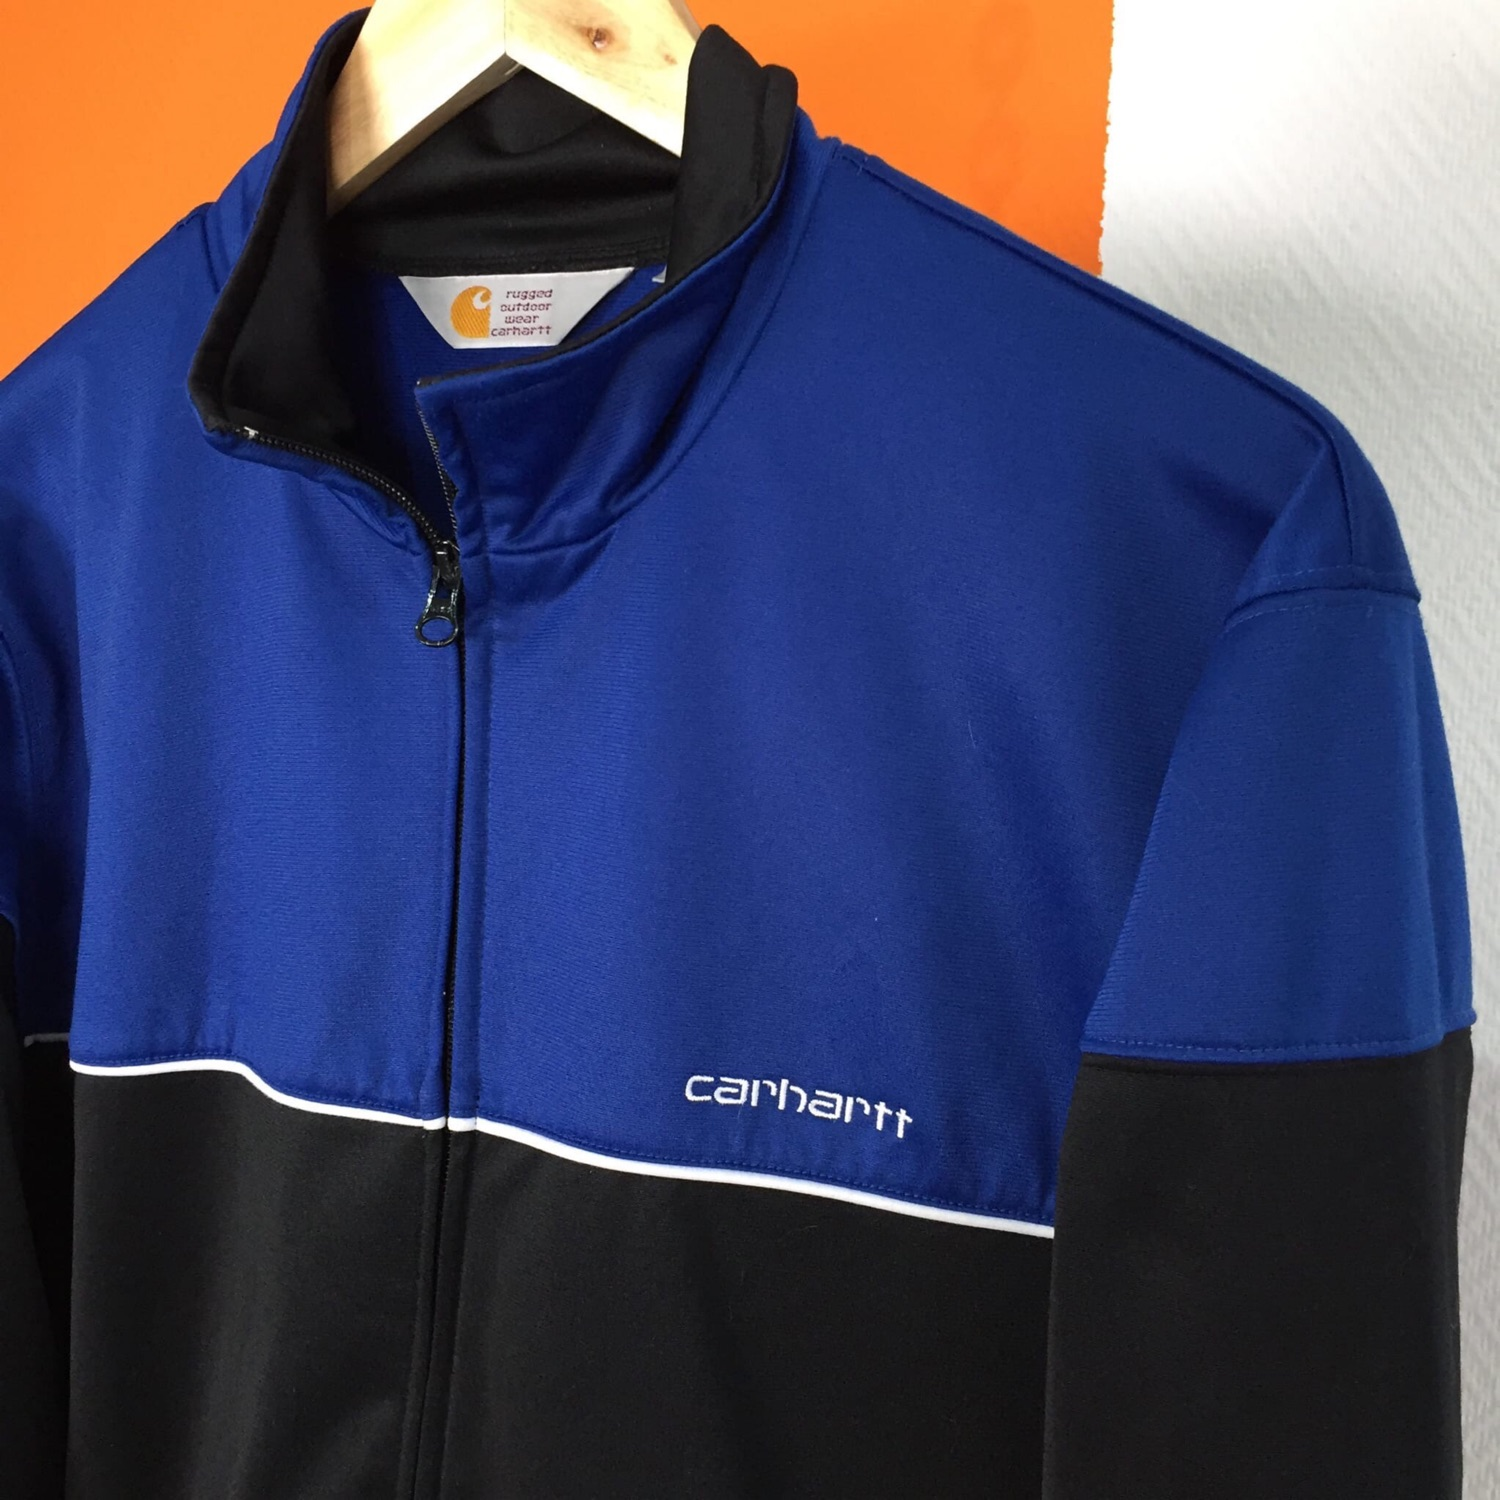 Carhartt Vintage Track Top Olympic Shirt